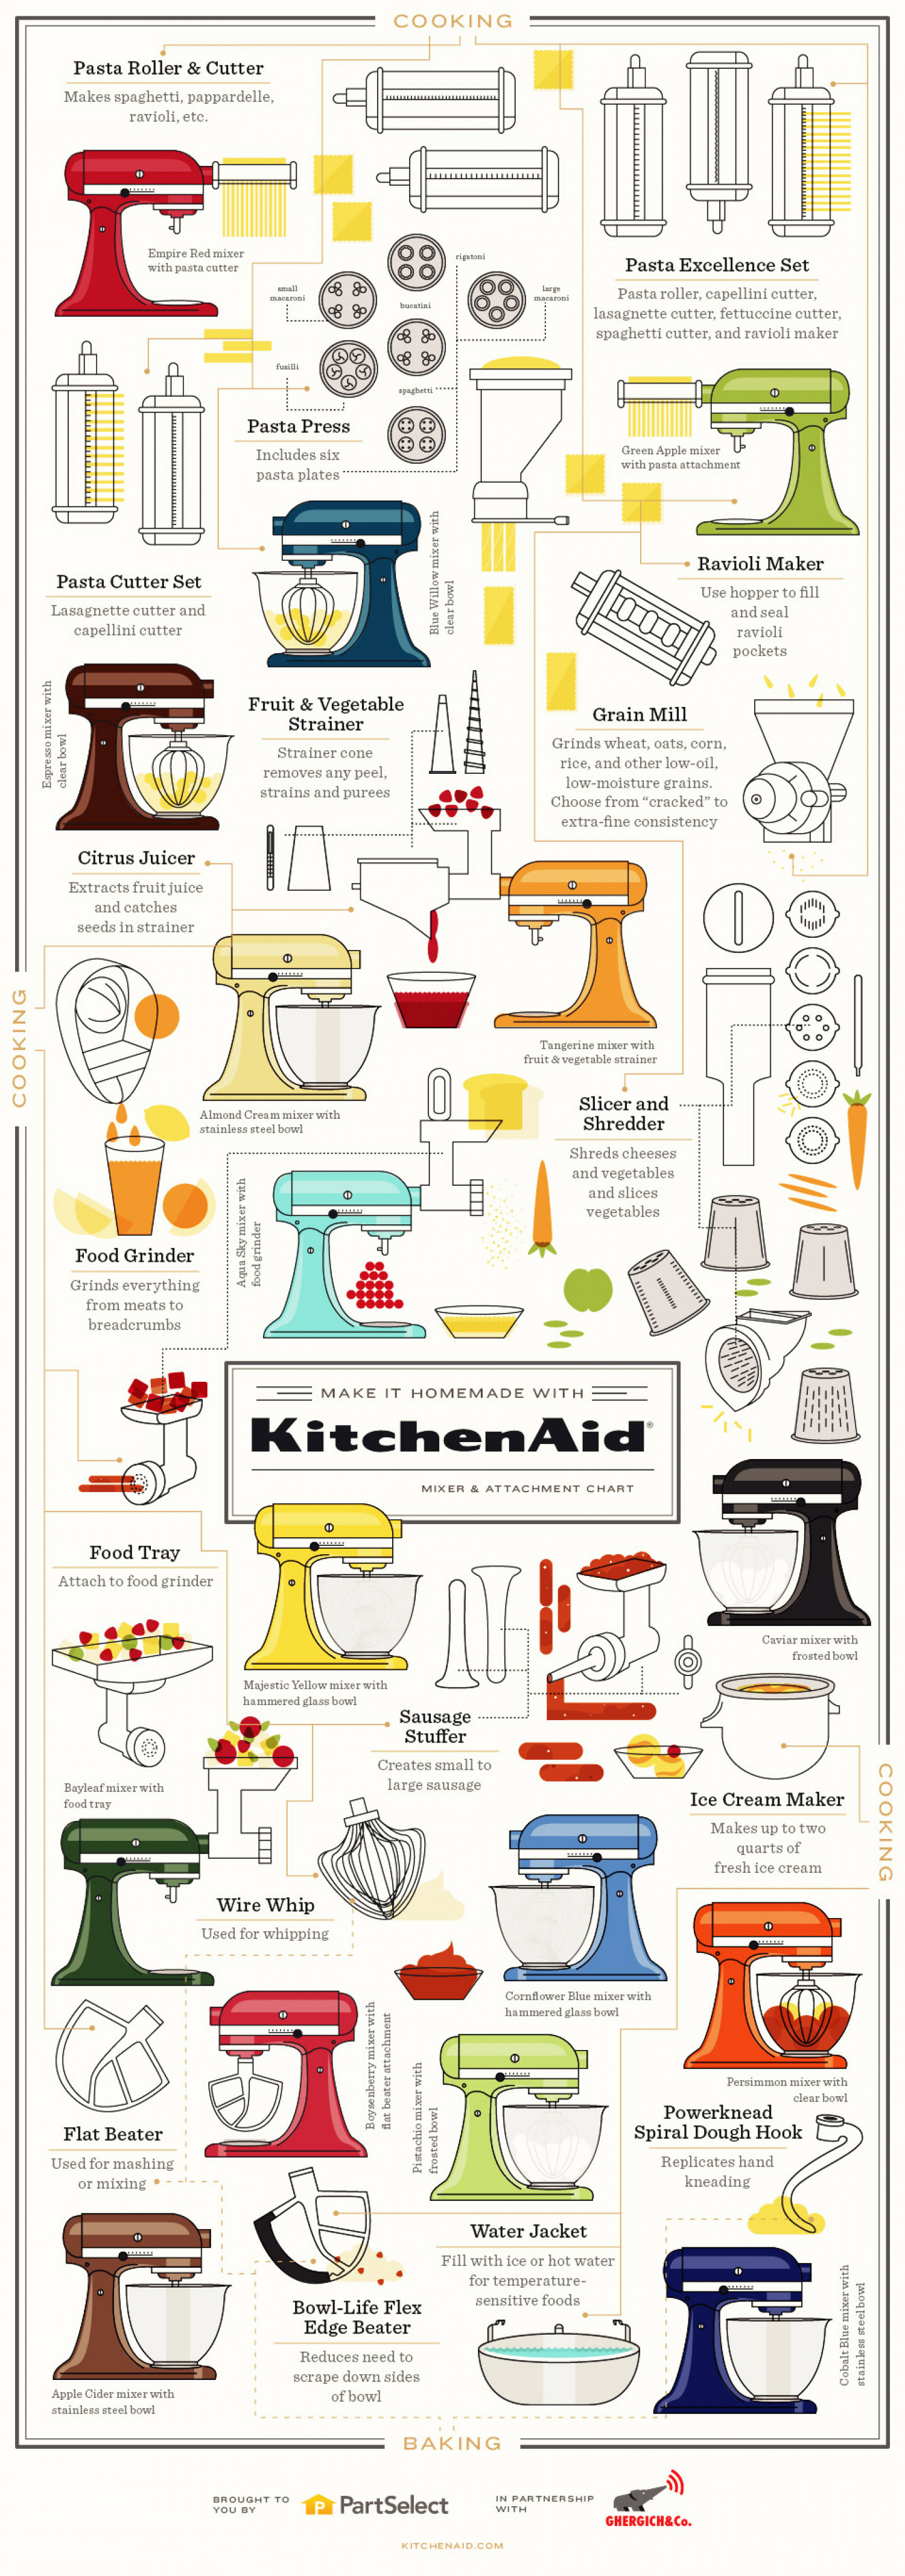 Make it Homemade with KitchenAid: Mixer & Attachment Chart Infographic